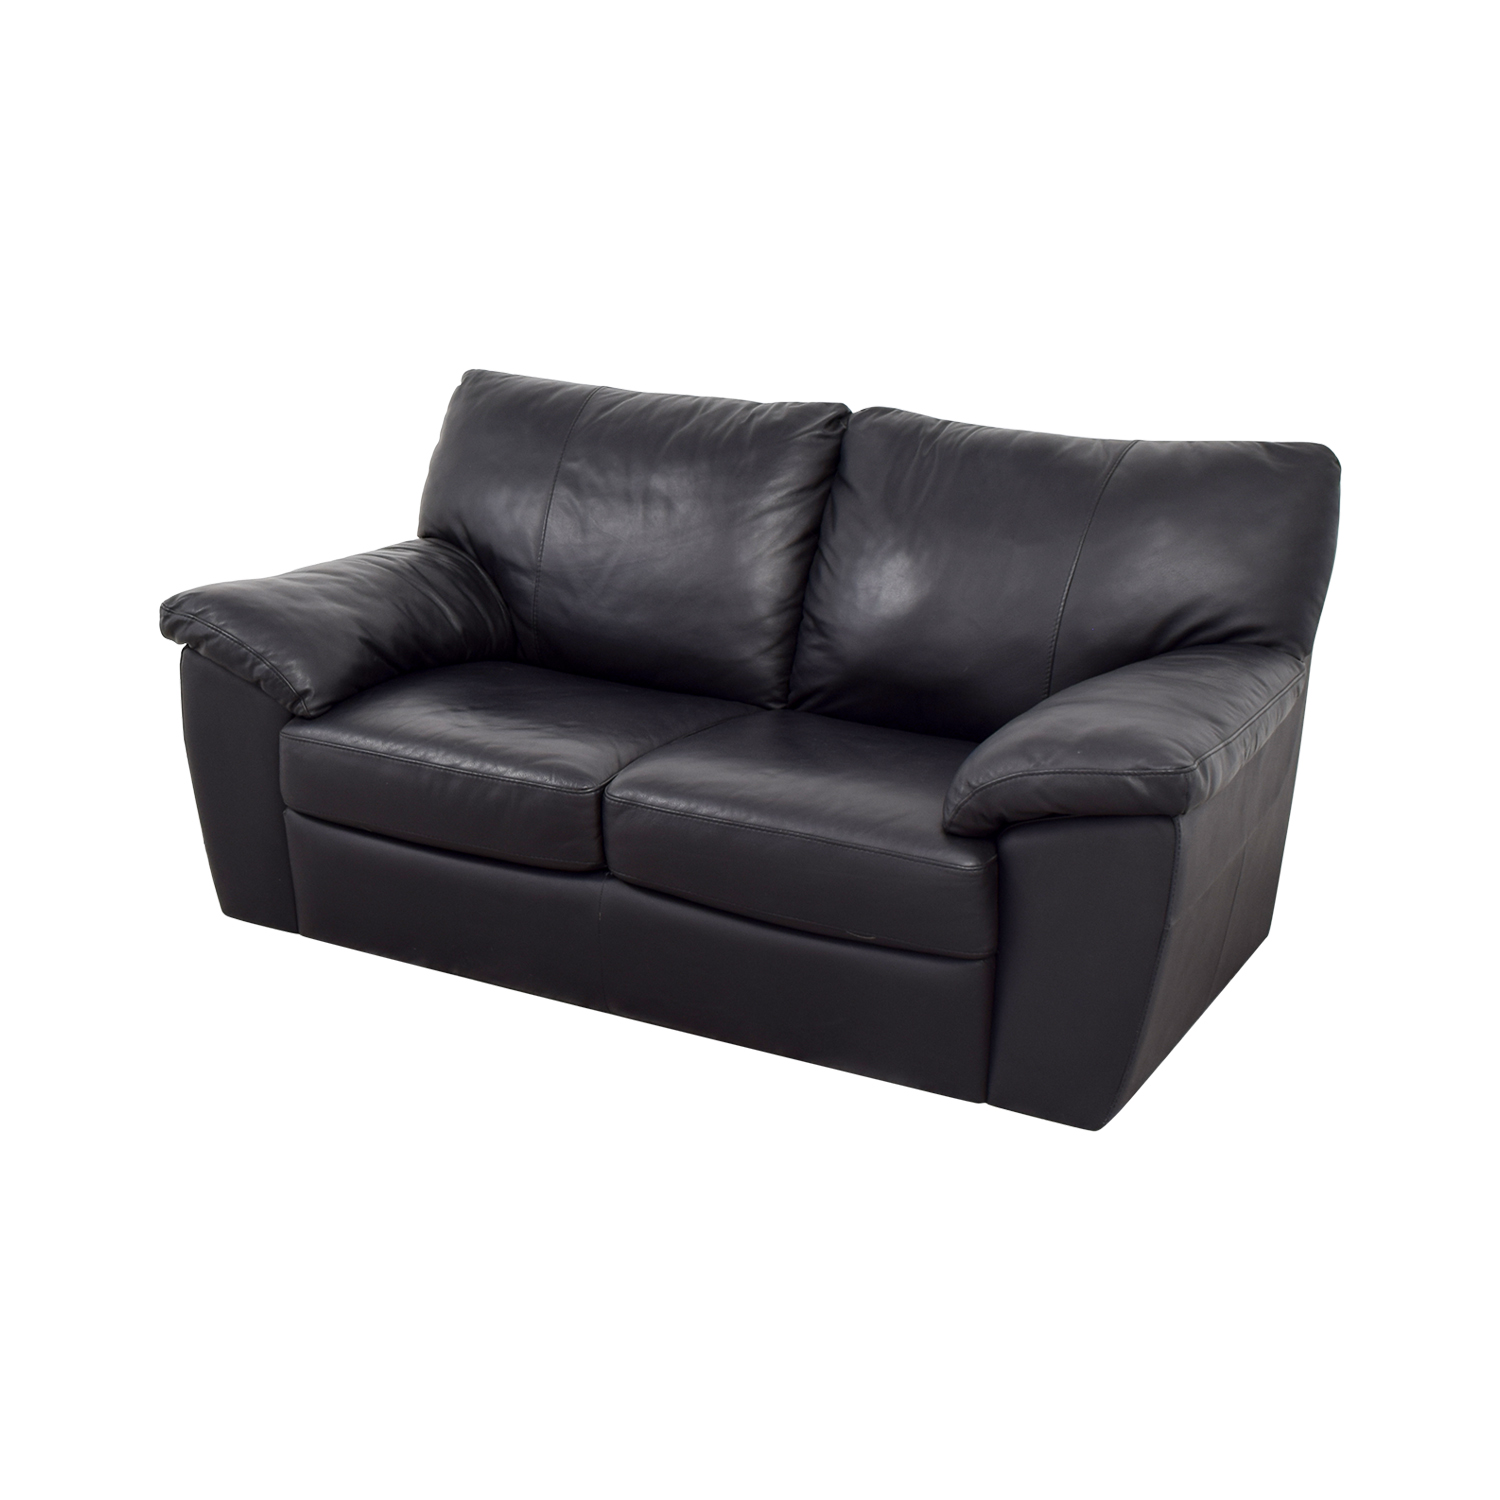 black leather chair ikea early learning table and chairs sofa stylish best ideas